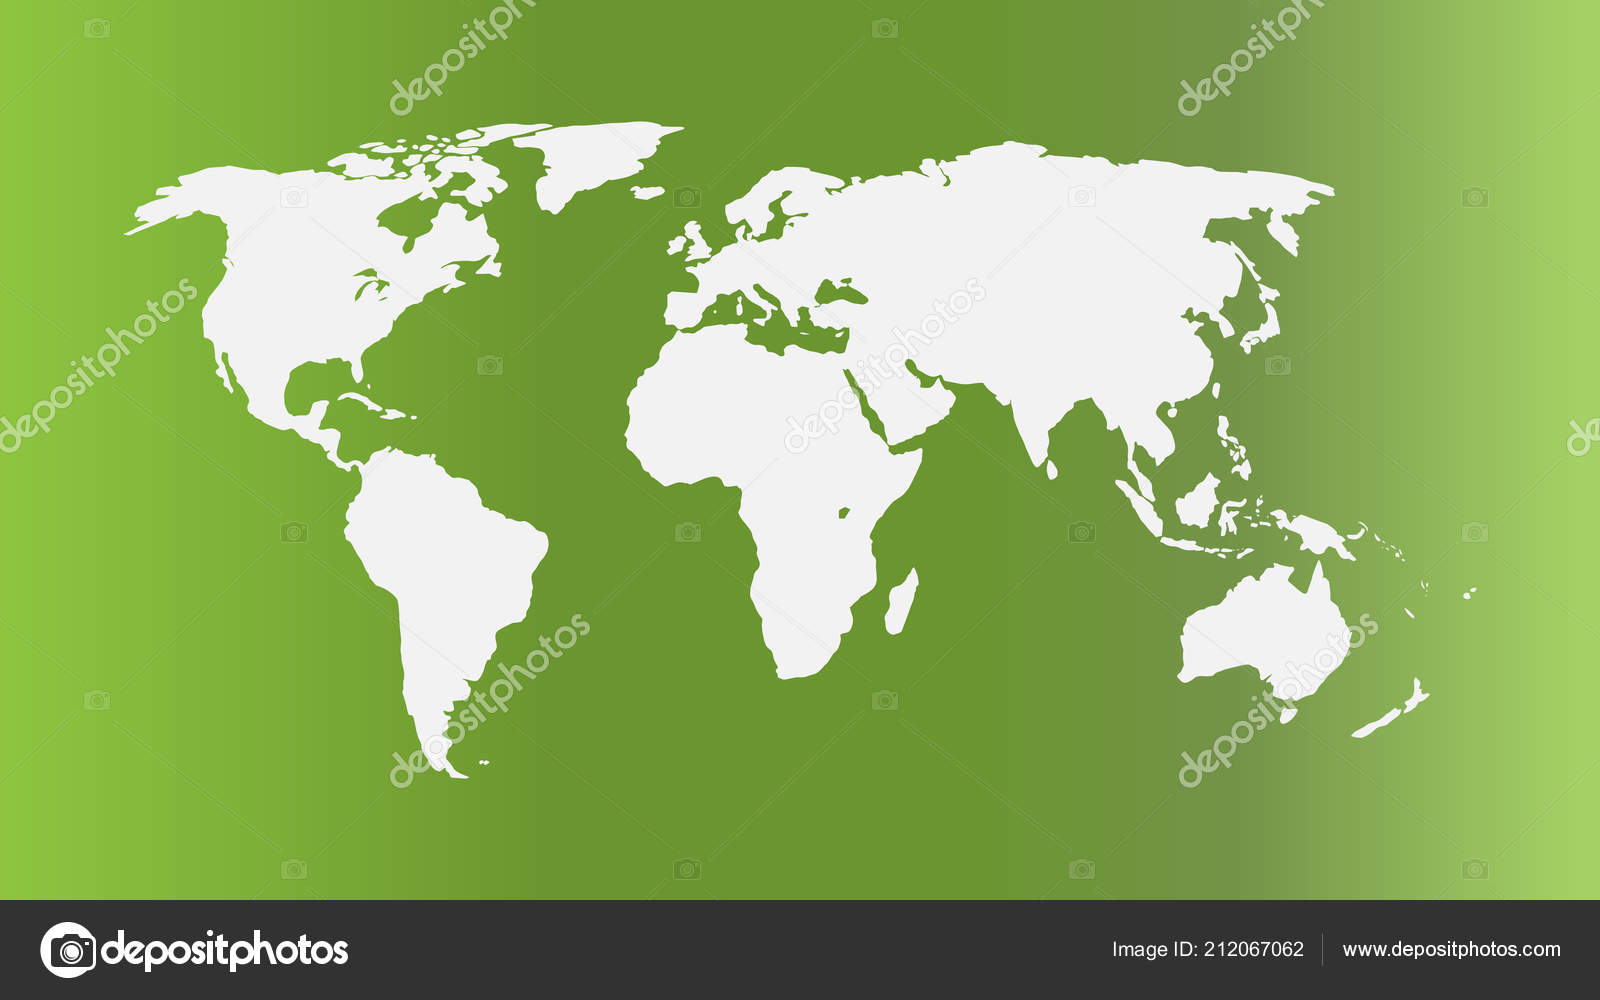 Flat Earth Map Download.World Map Vector Isolate Blank Background Flat Earth Map Website